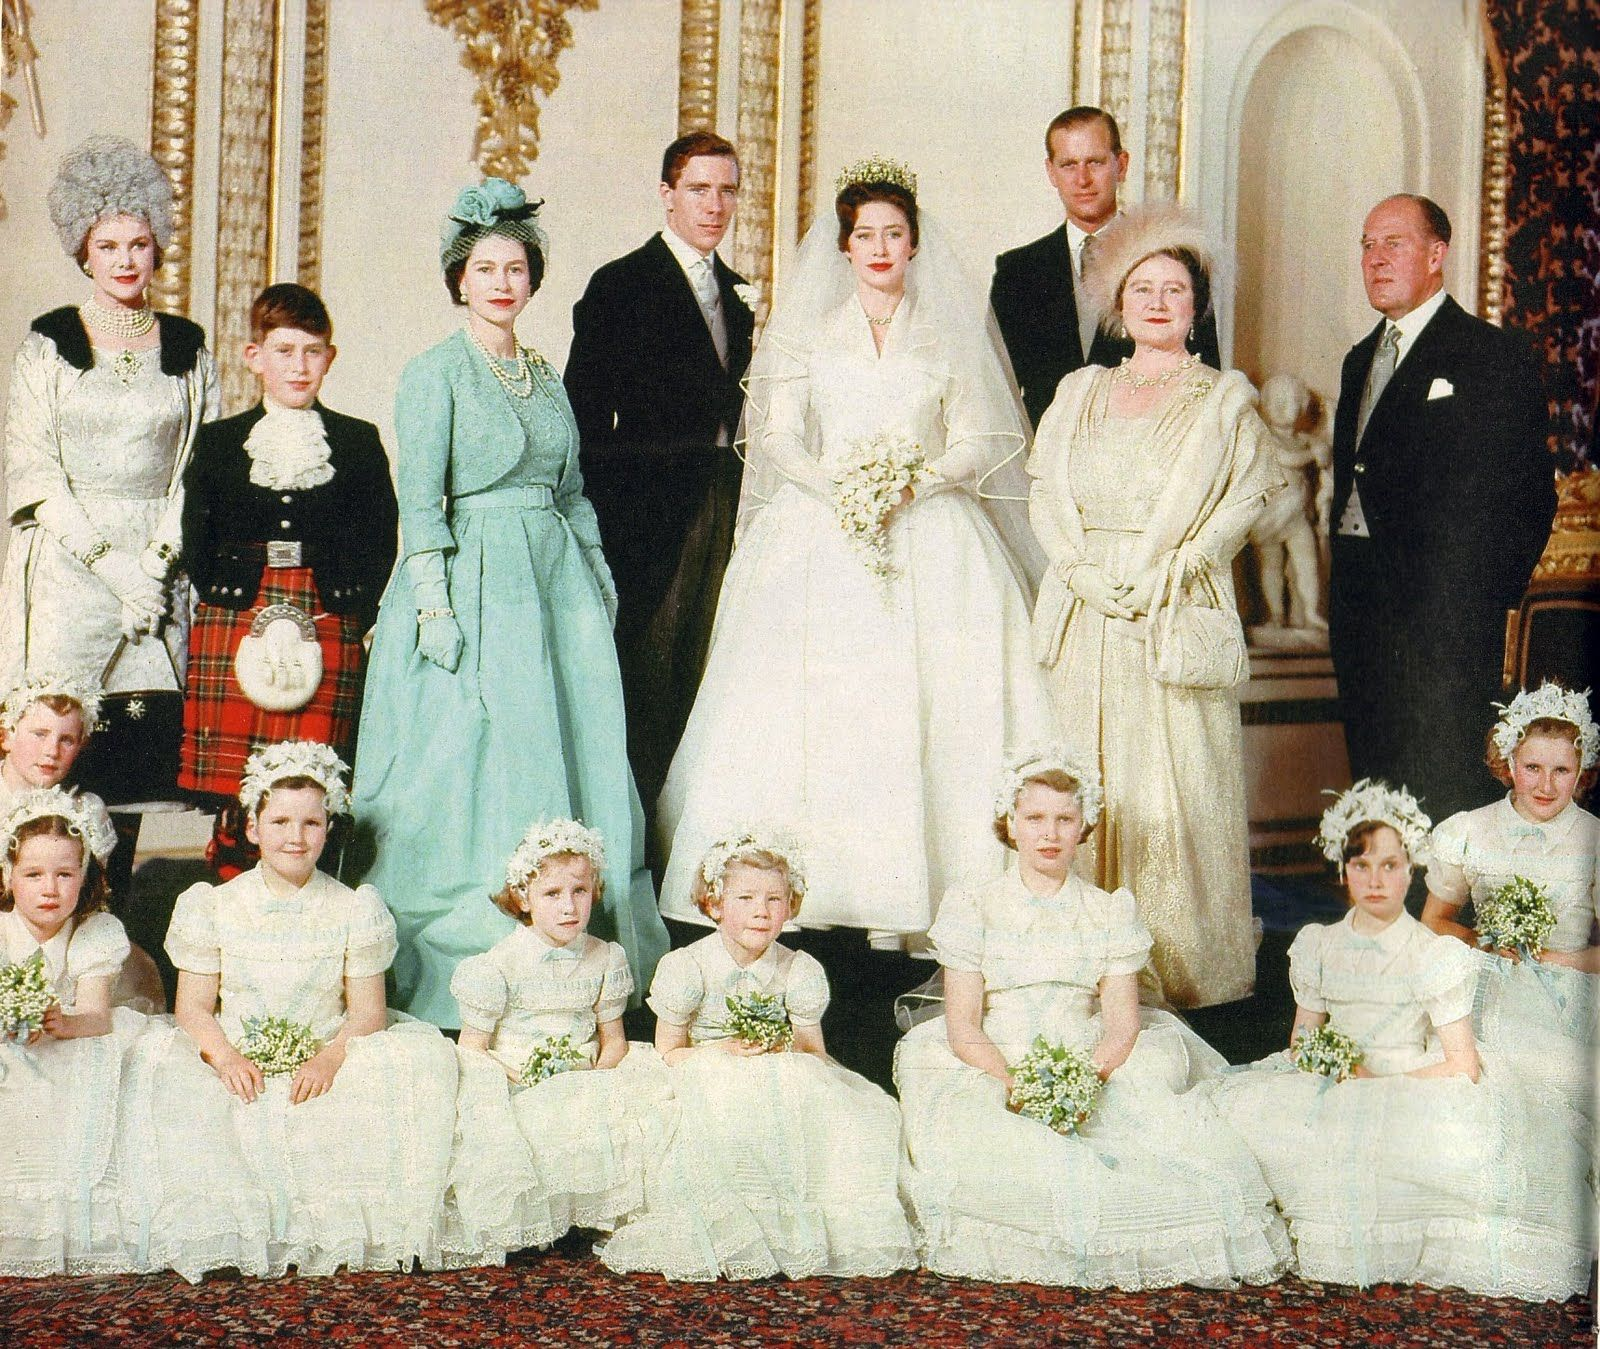 Princess Margaret and Antony ArmstrongJones married 6 May